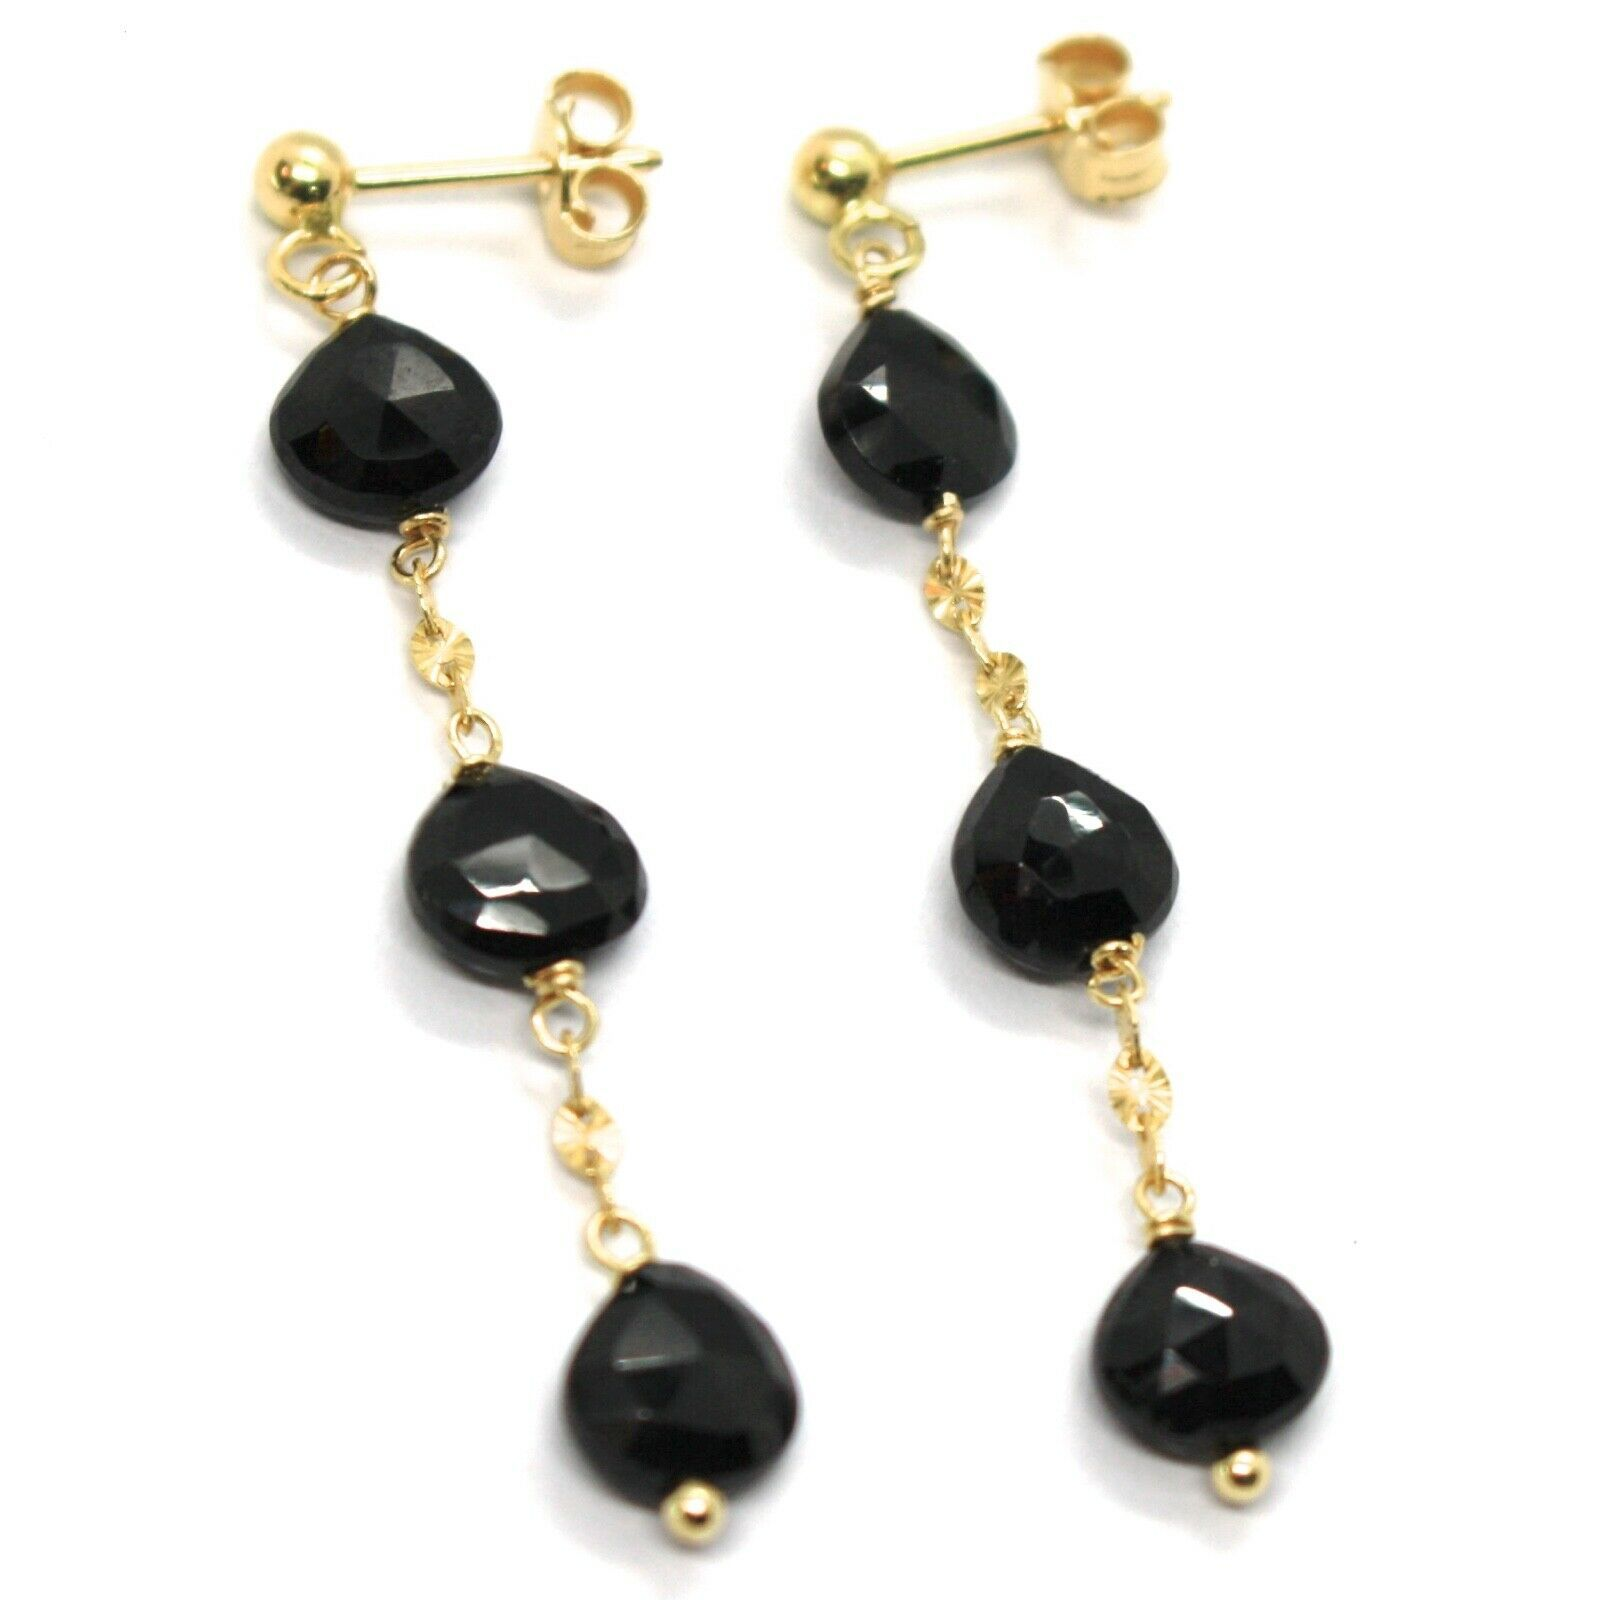 18K YELLOW GOLD PENDANT EARRINGS, BLACK SPINEL DROP, 1.77 INCHES